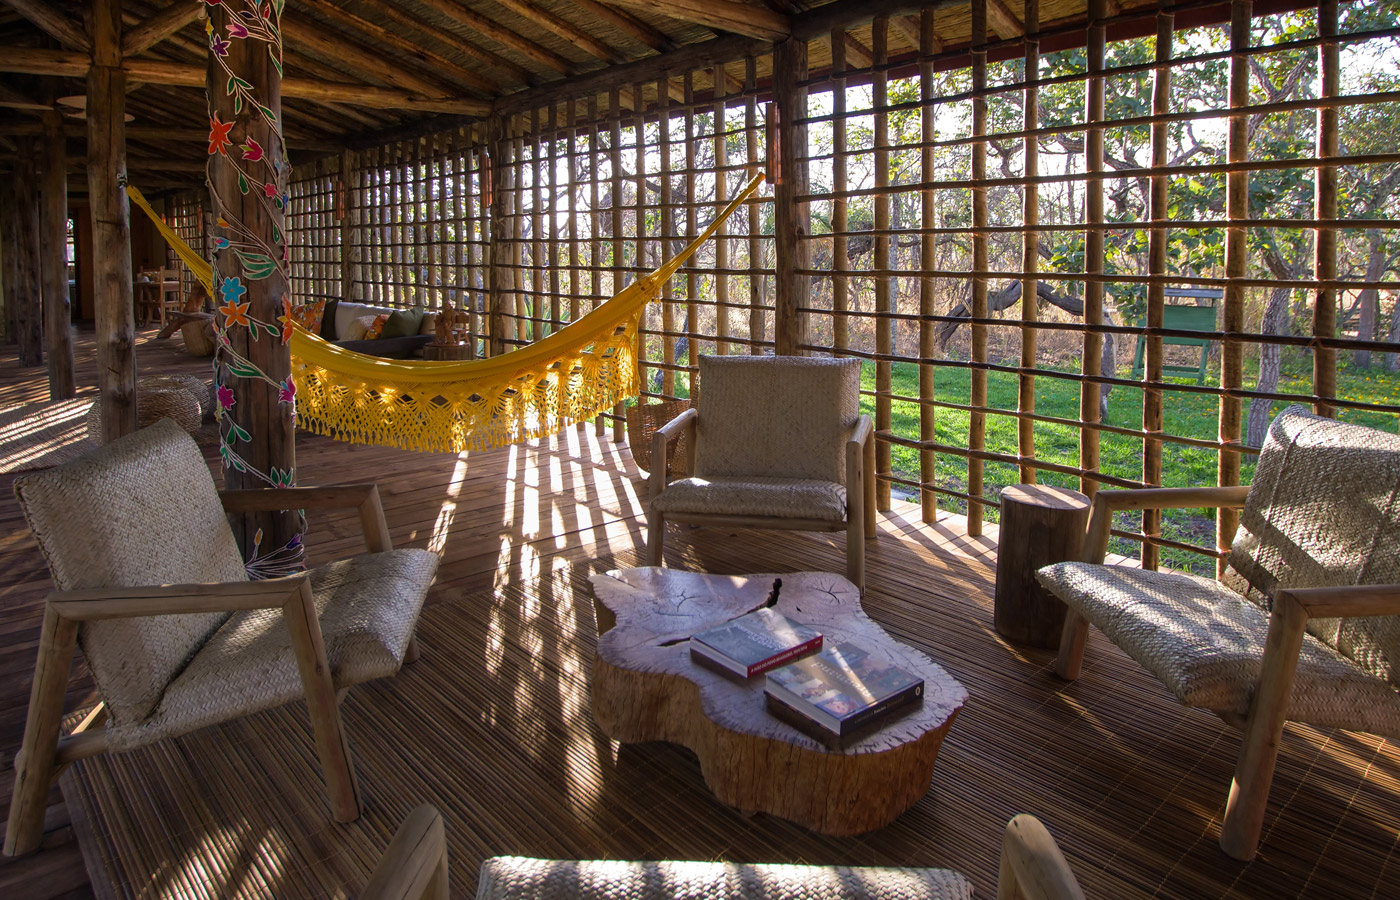 Pousada Trijuncao, Luxury wildlife lodge in the Brazilian Cerrado